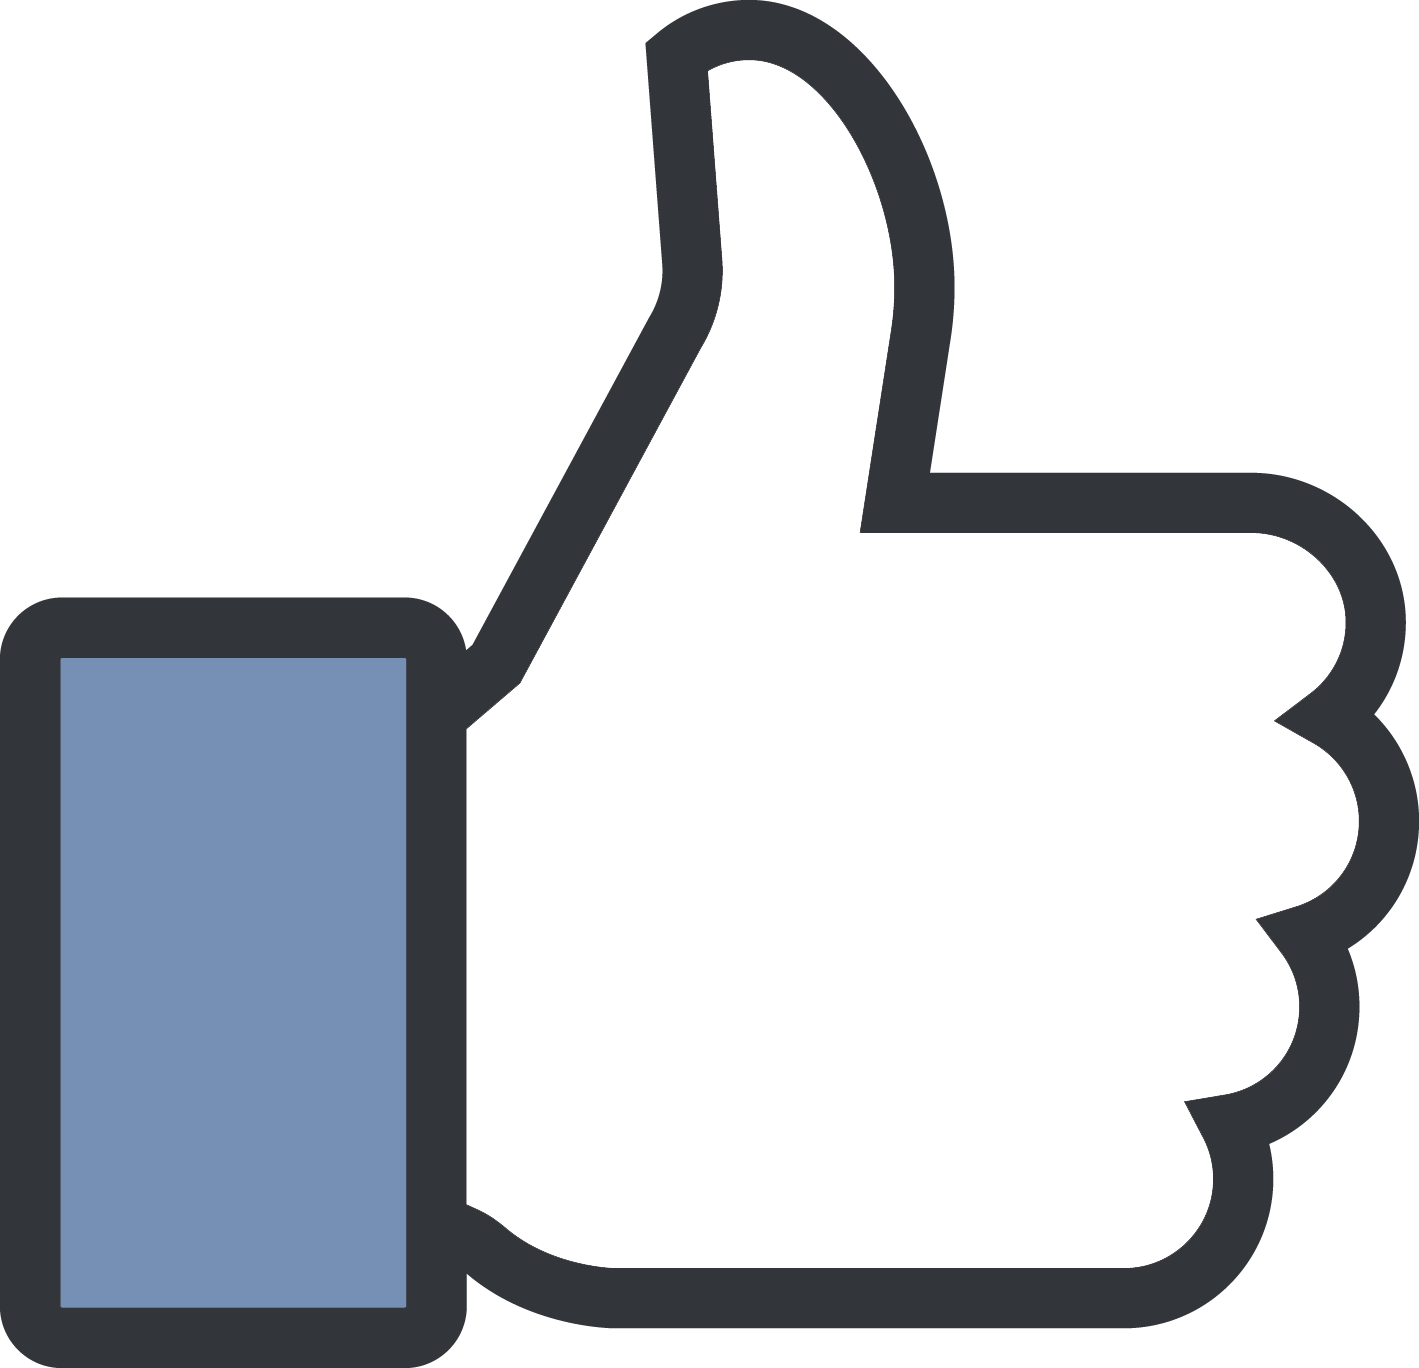 Facebook thumbs up clipart png freeuse stock Like Symbol In Facebook Image collections - meaning of text symbols png freeuse stock